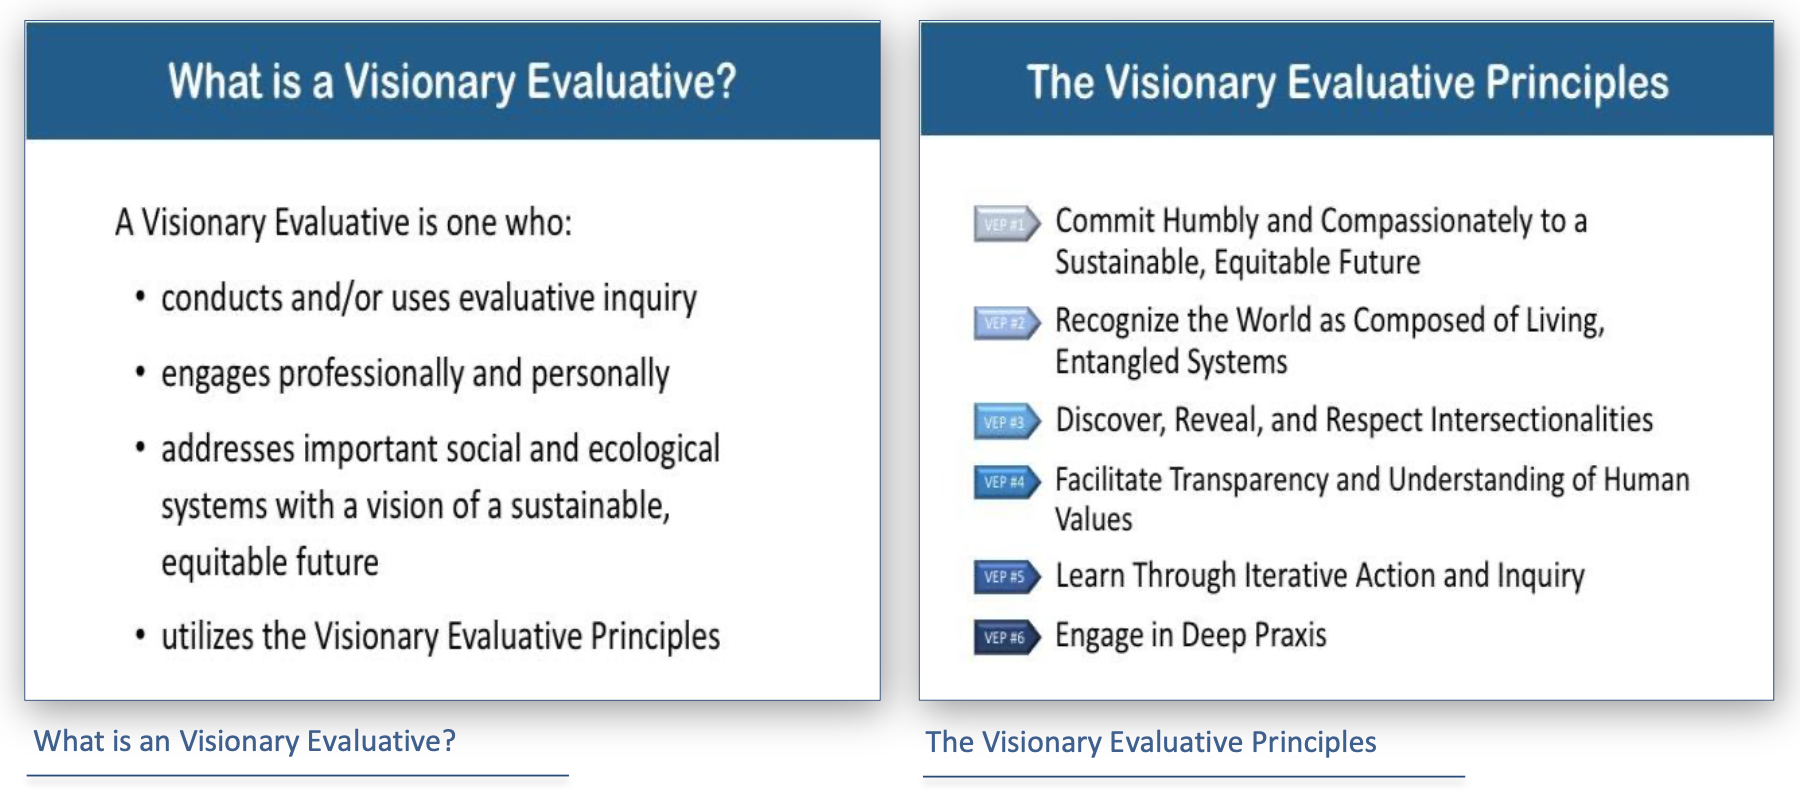 What is a Visionary Evaluative? and The Visionary Evaluative Principles bullet points